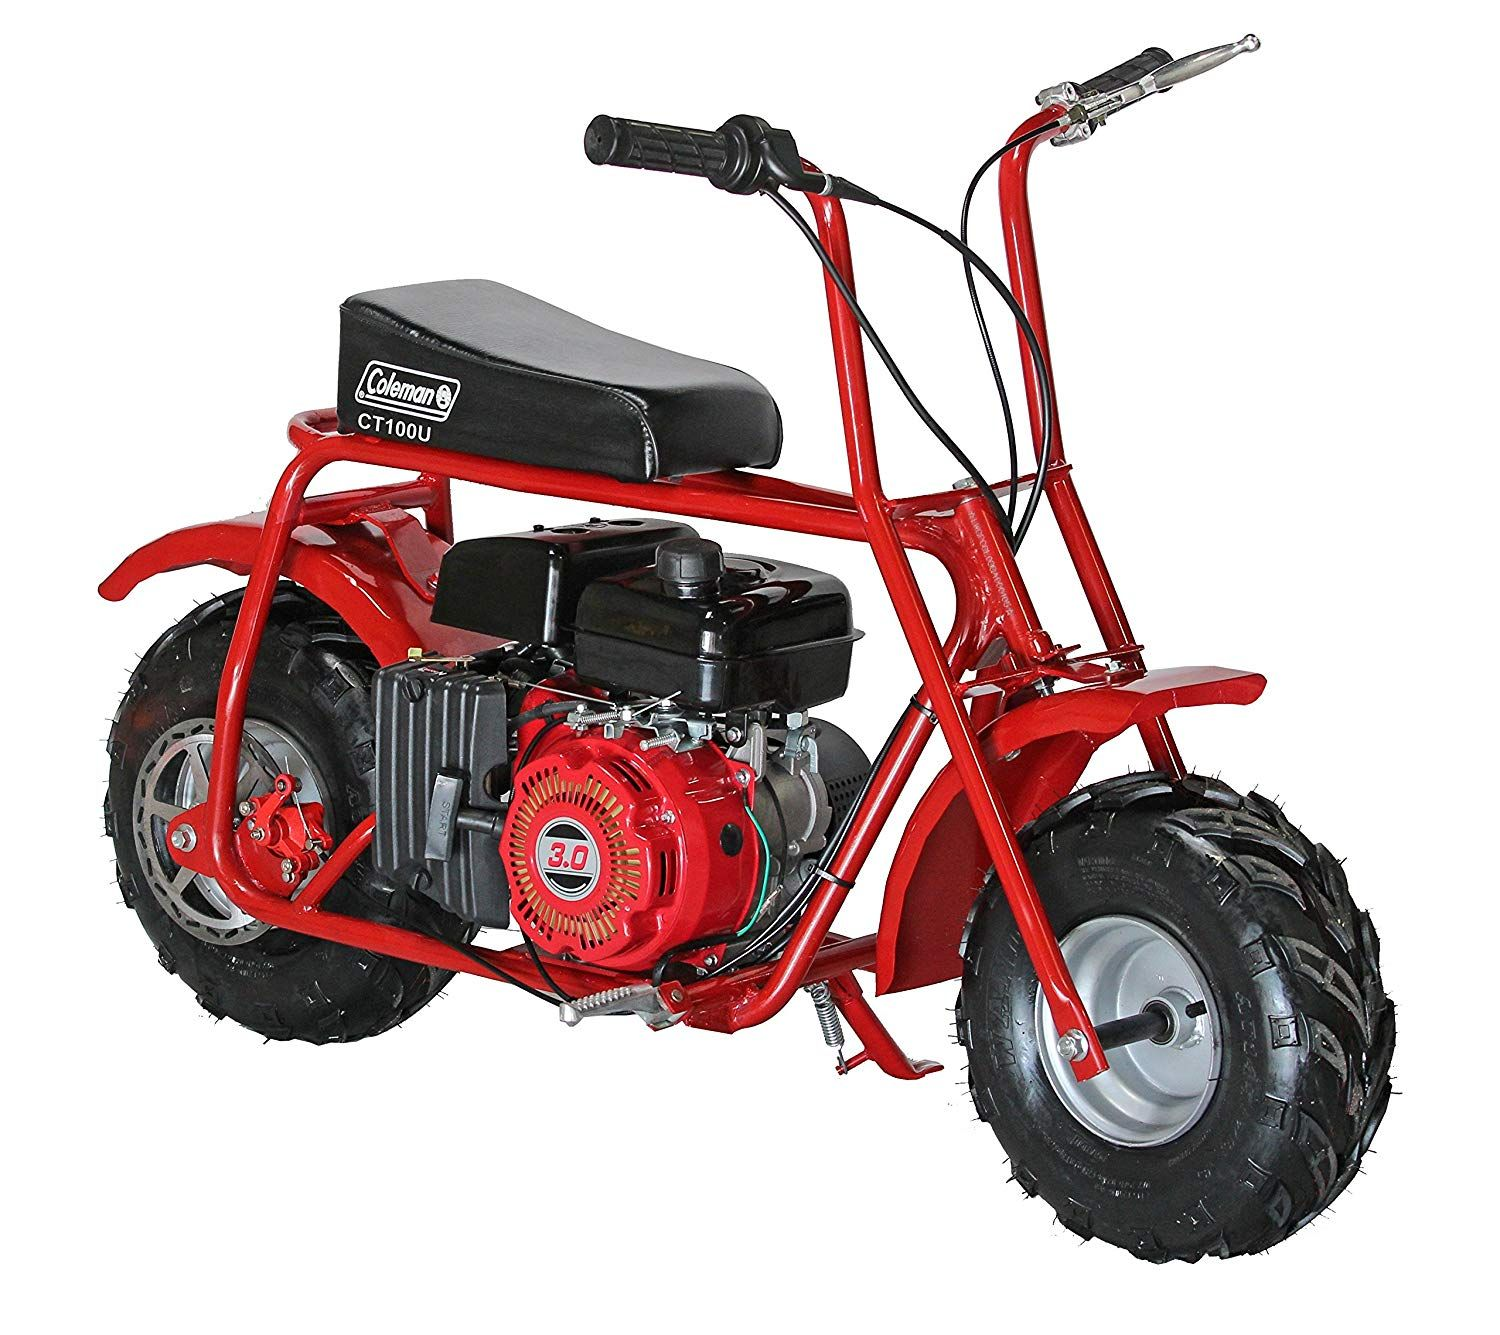 Preferred Gear Best Products And Special Deals Mini Bike